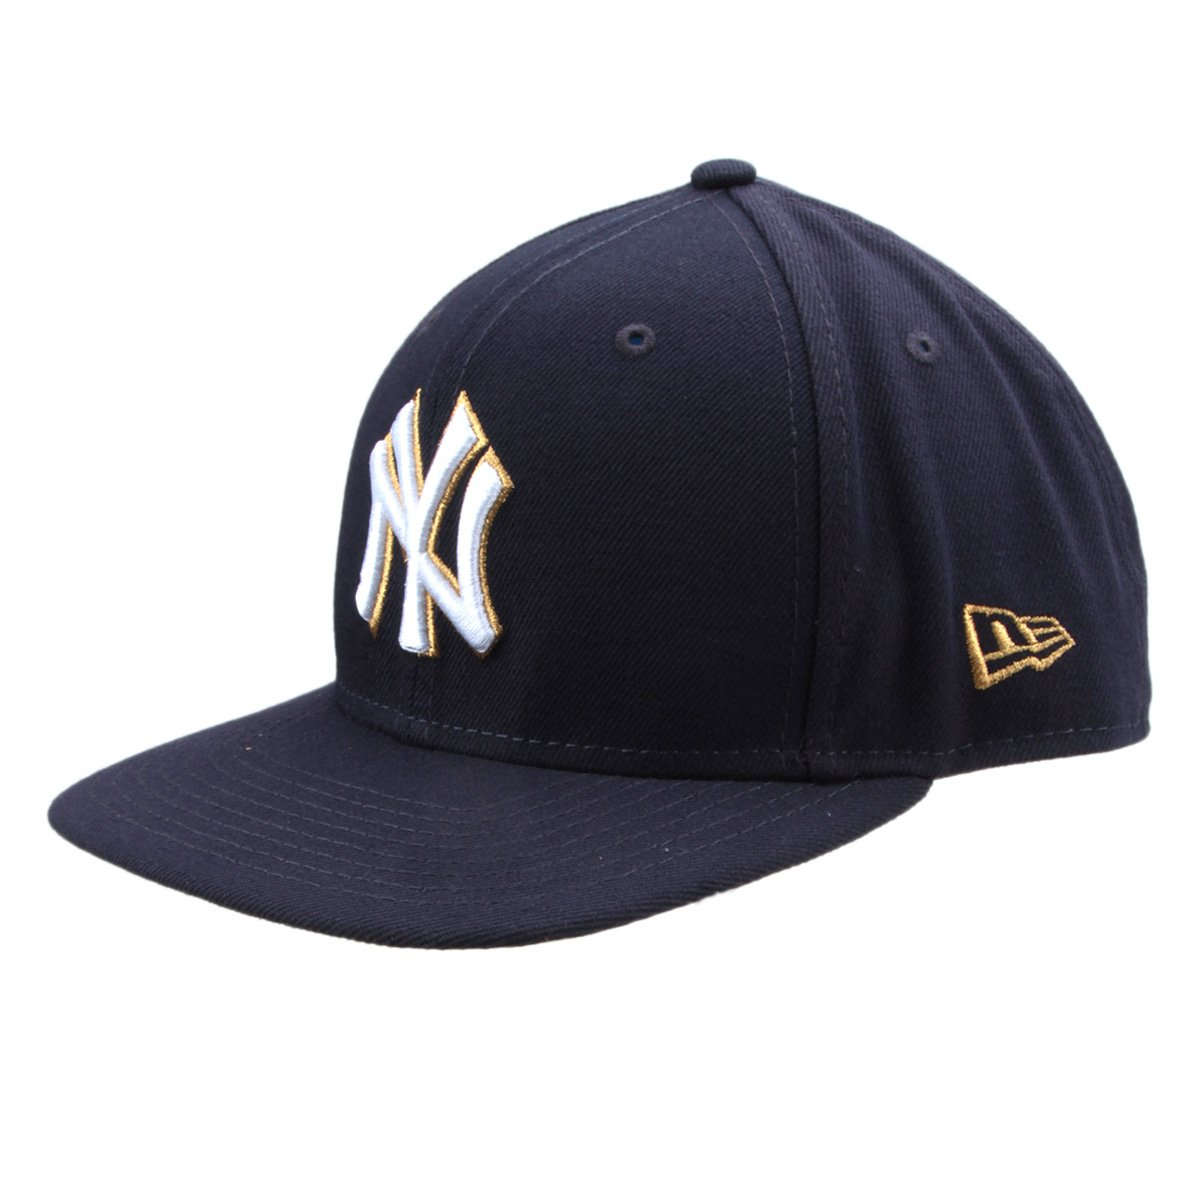 Boné New Era MLB New York Yankees Aba Reta Gold City - Compre Agora ... 548e87c0334